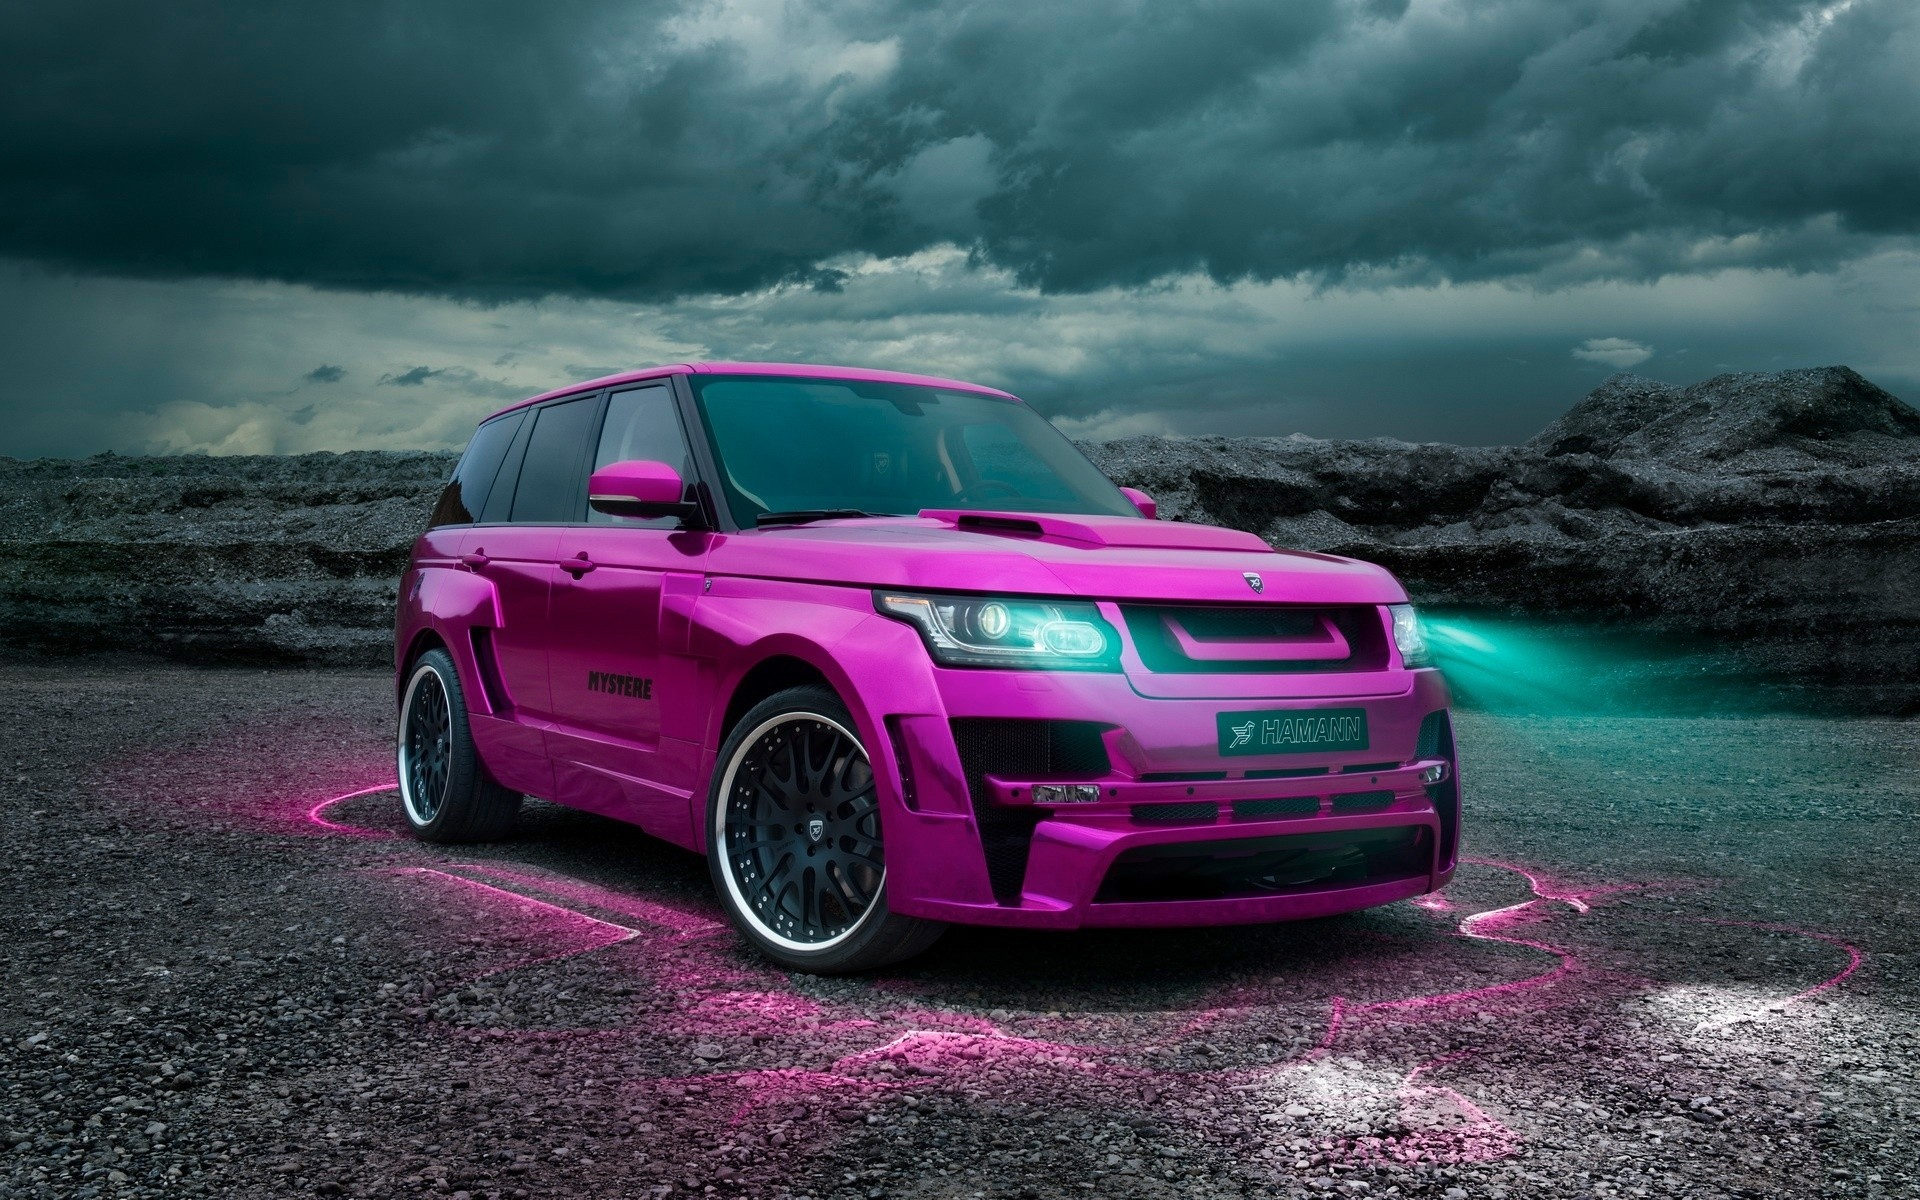 Розовый Range Rover Vogue 2013